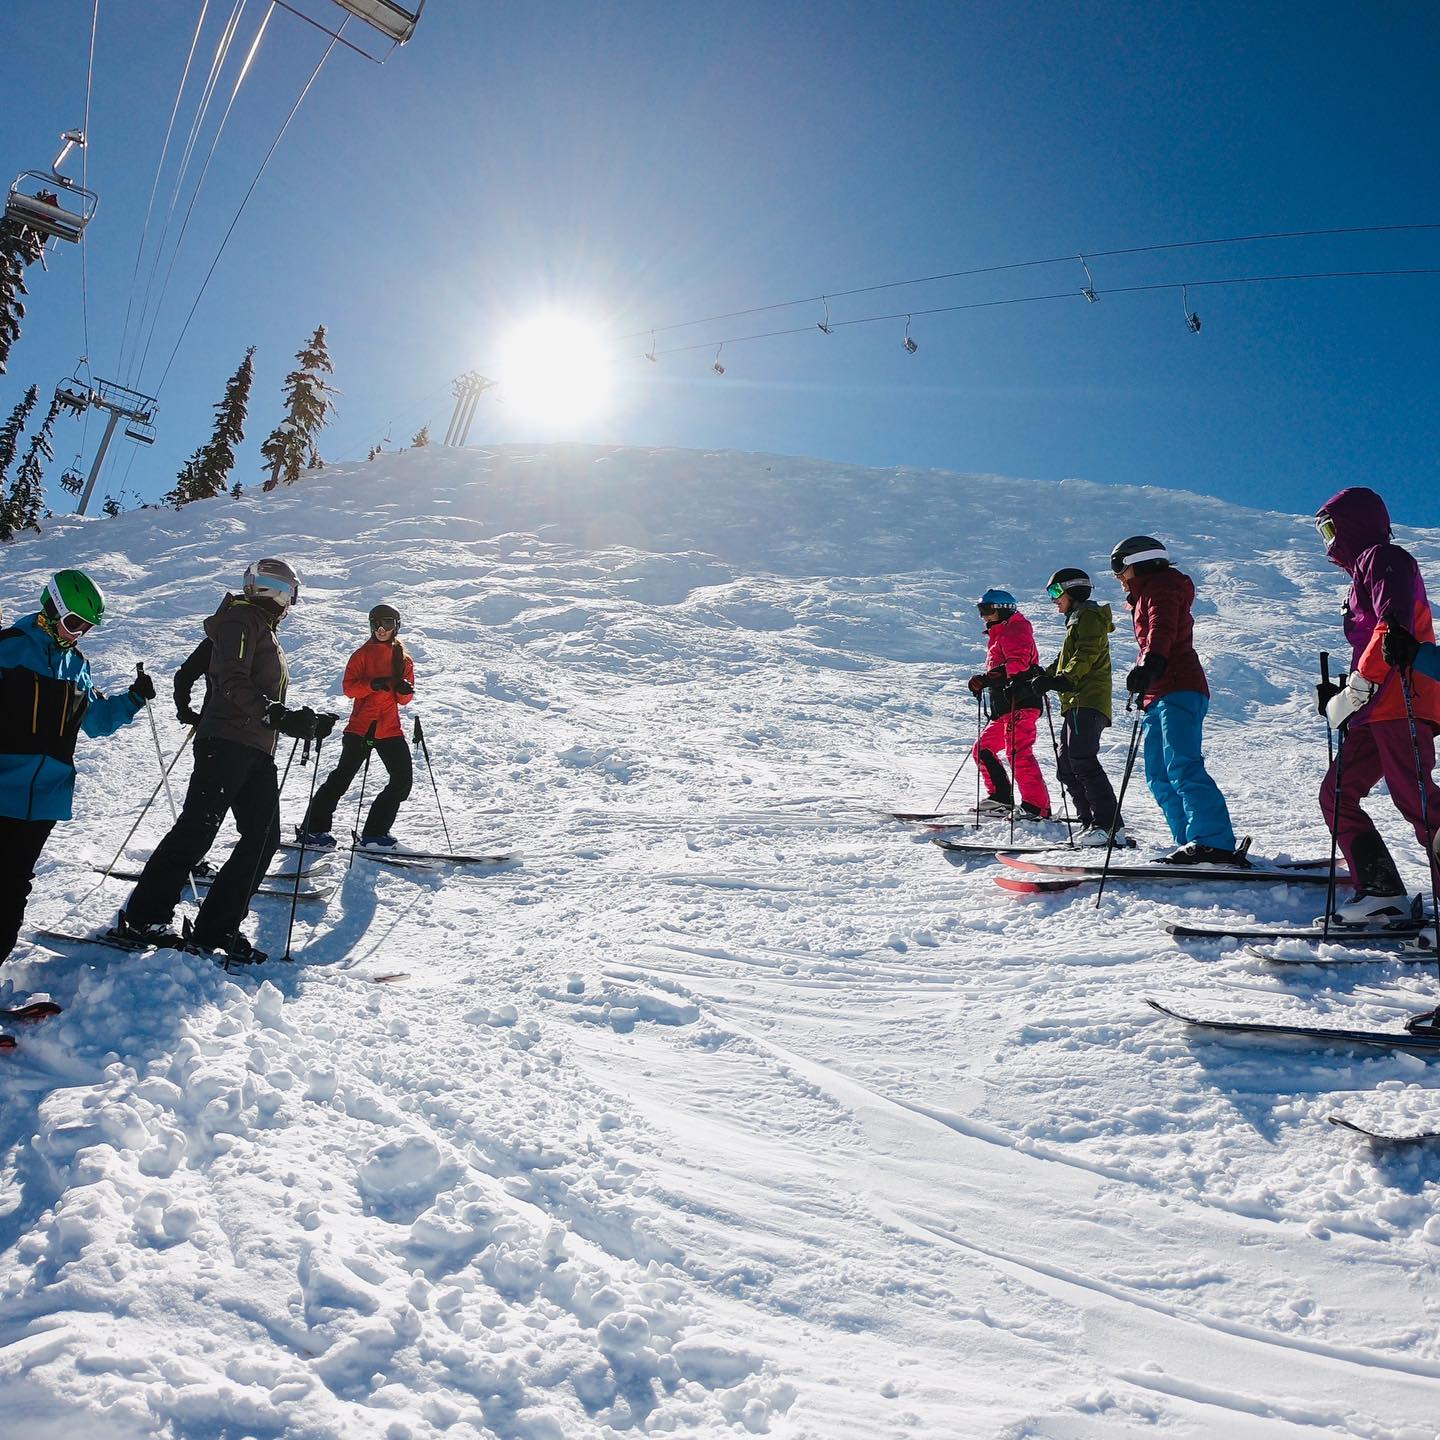 Image of a group of skiers at White Pass Ski Area in Washington